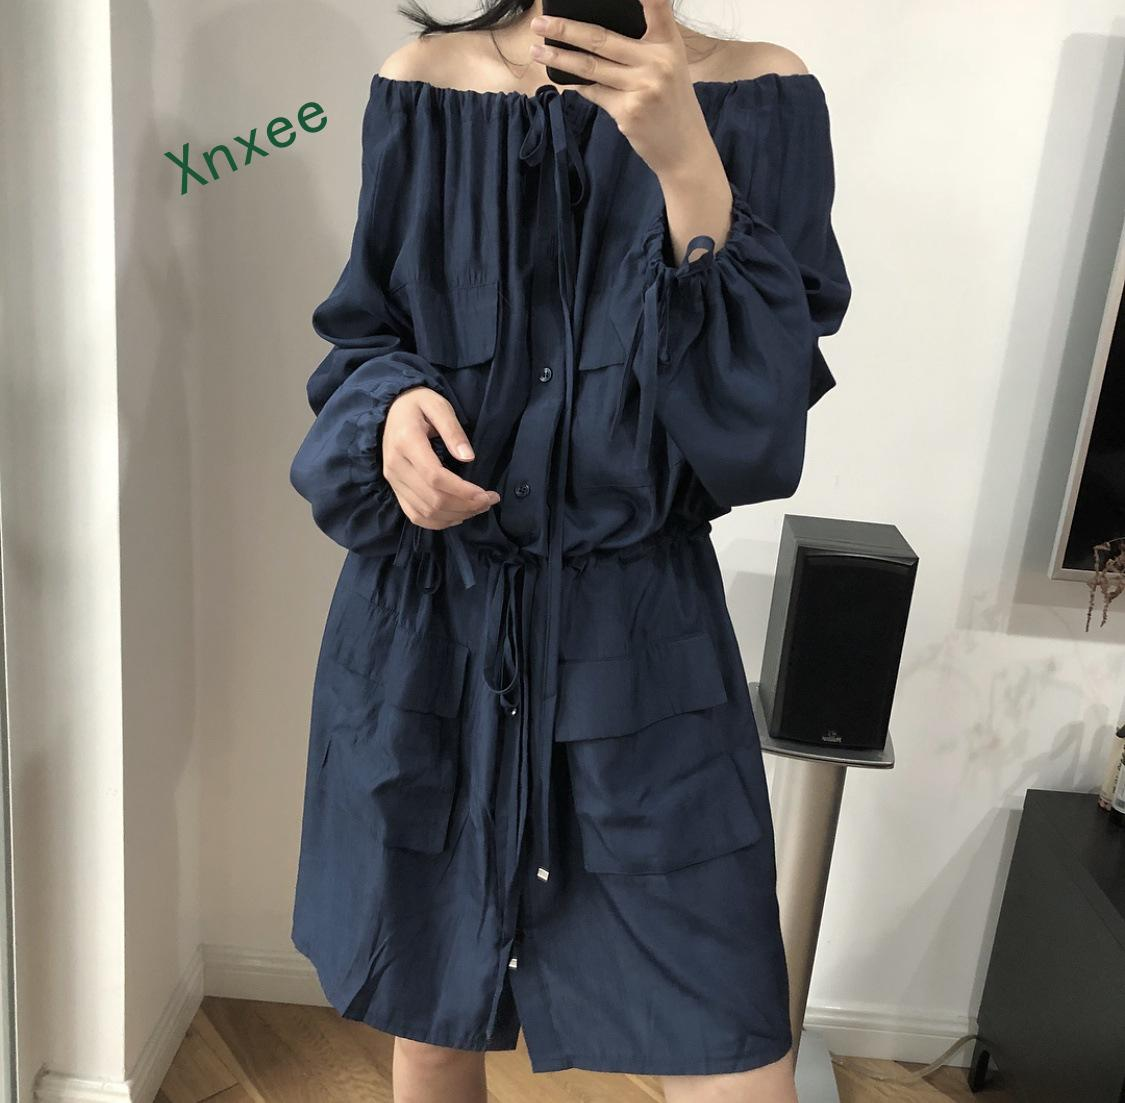 Xnxee Women Thin   Trench   Women   Trench   Coat Long Autumn Coats Female 2019 Solid Chiffon Splice Outwear Loose   Trench   Coat